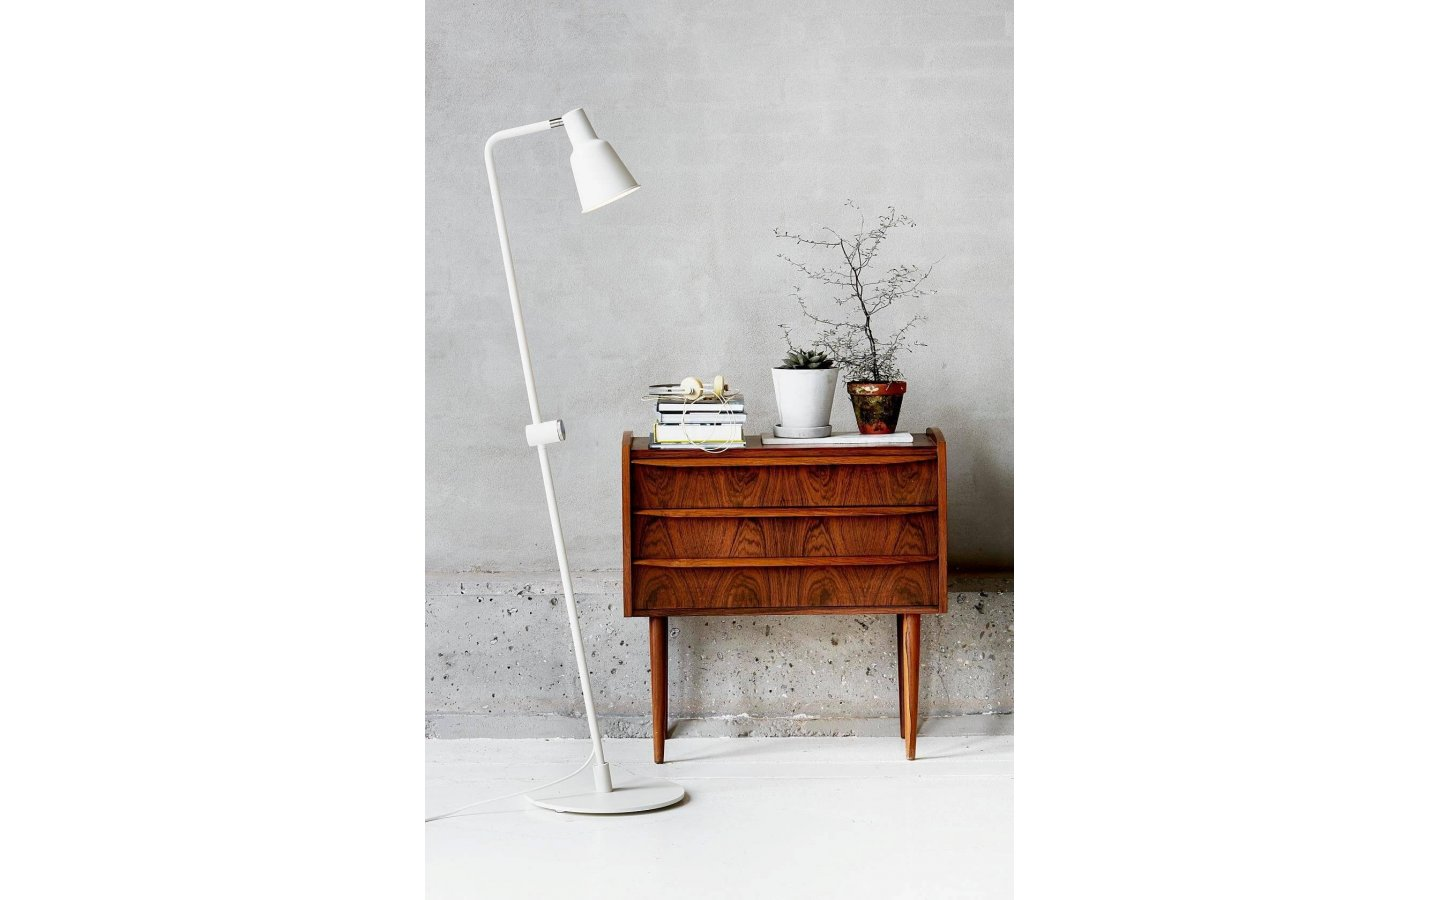 Patton Golvlampa Vit